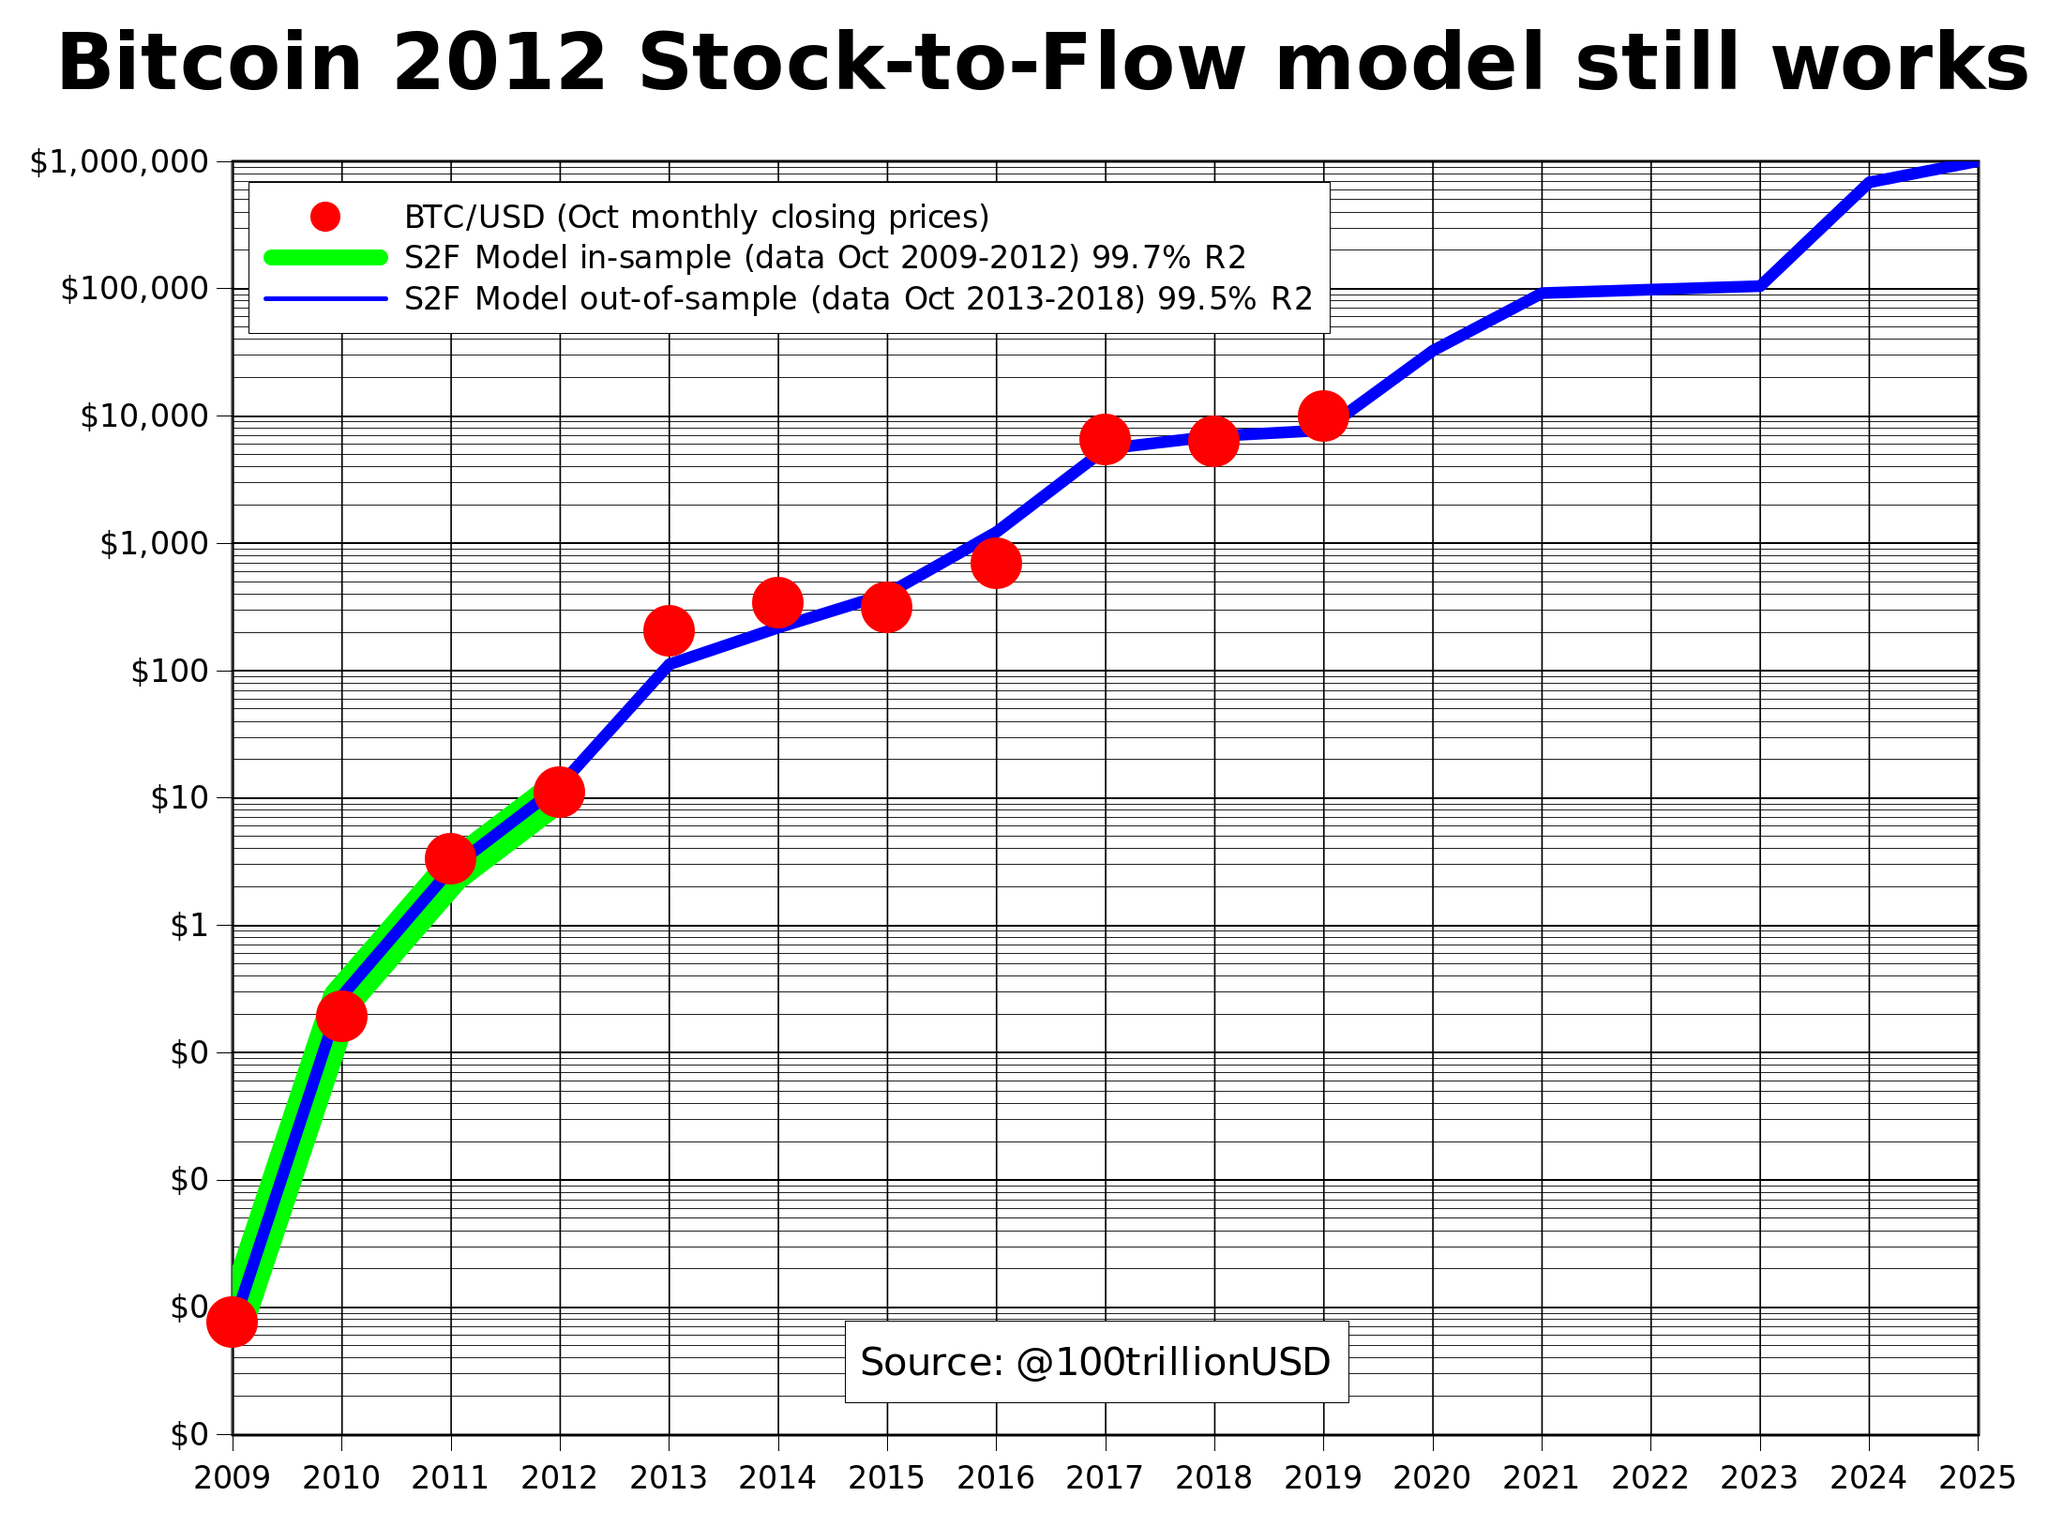 Planb On Twitter Bitcoin 2012 Stock To Flow Model Still Works S2f Model Made With 2009 2012 Data Only 4 Data Points Before Any Halving Green Line Correctly Predicted 2013 2019 7 Out Of Sample Data Points